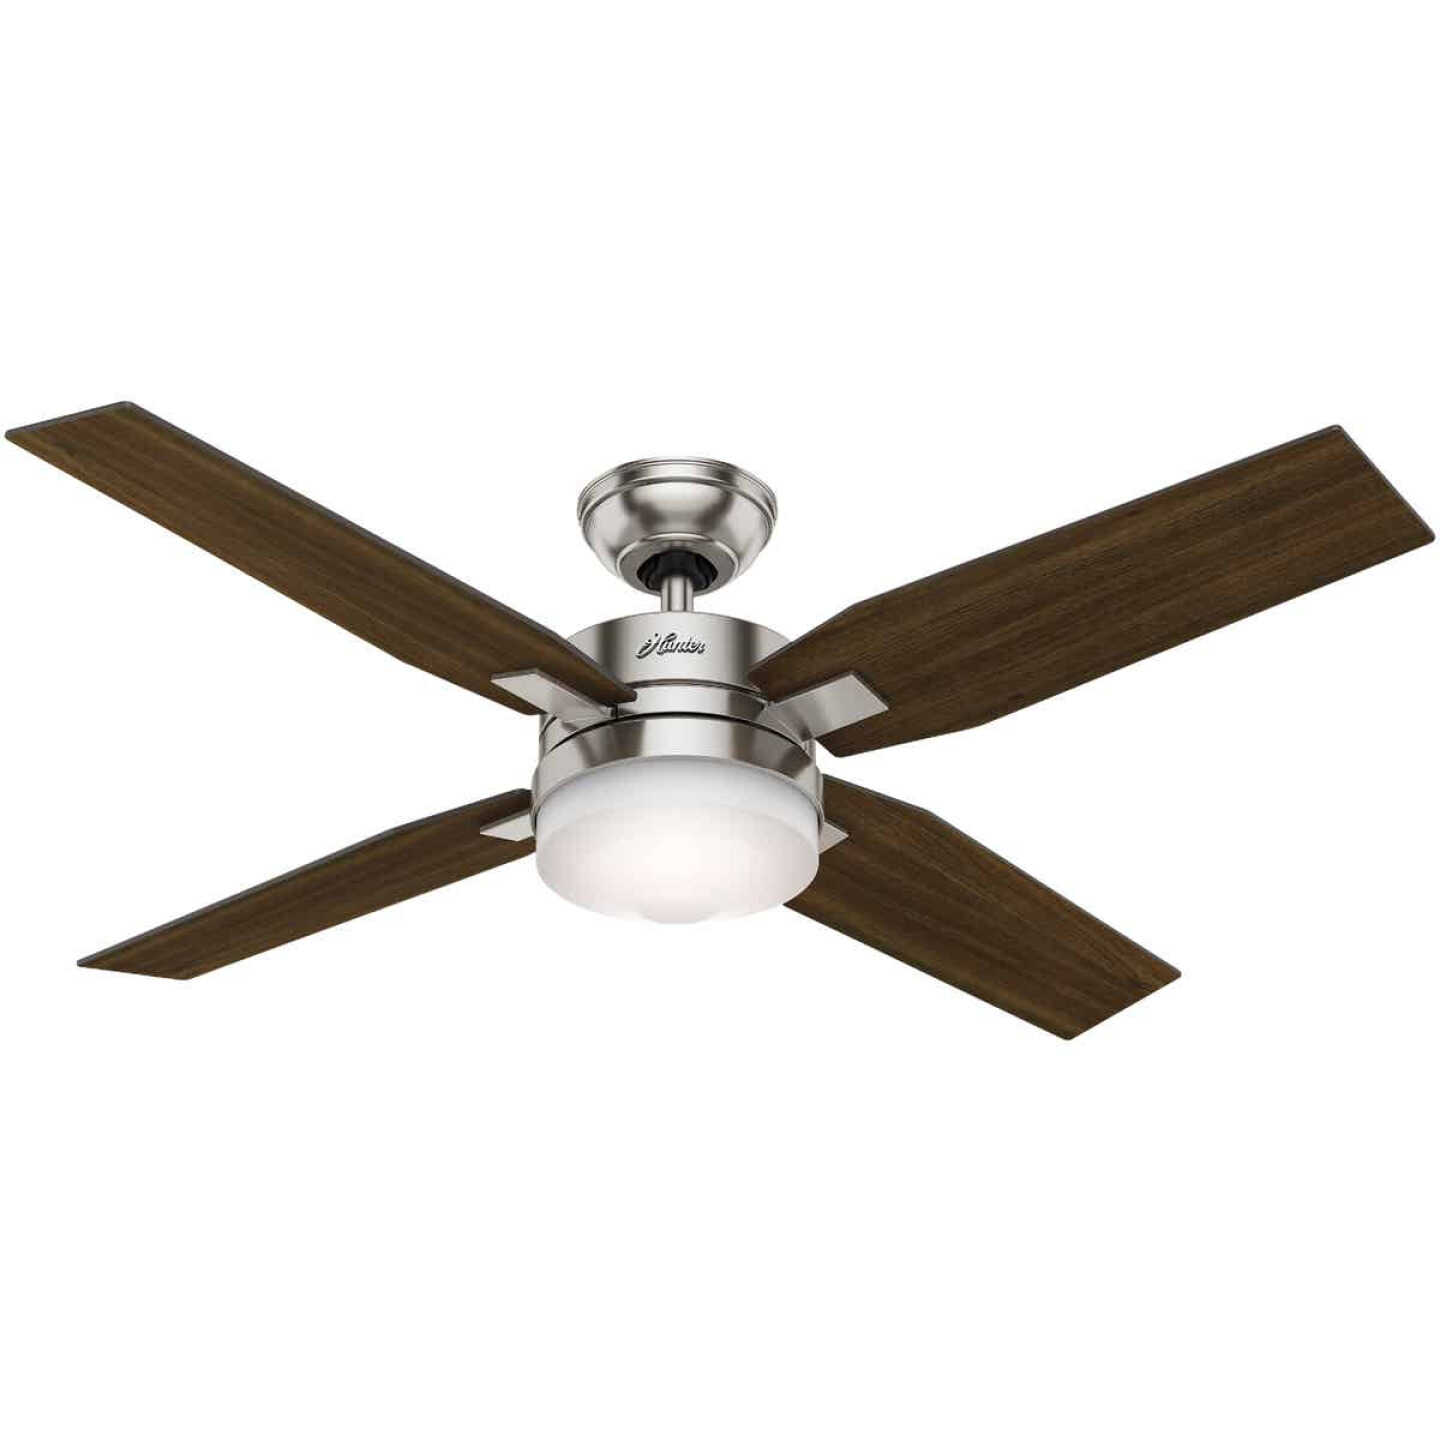 Hunter Mercado 50 In. Brushed Nickel Ceiling Fan with Light Kit and Fan Image 1